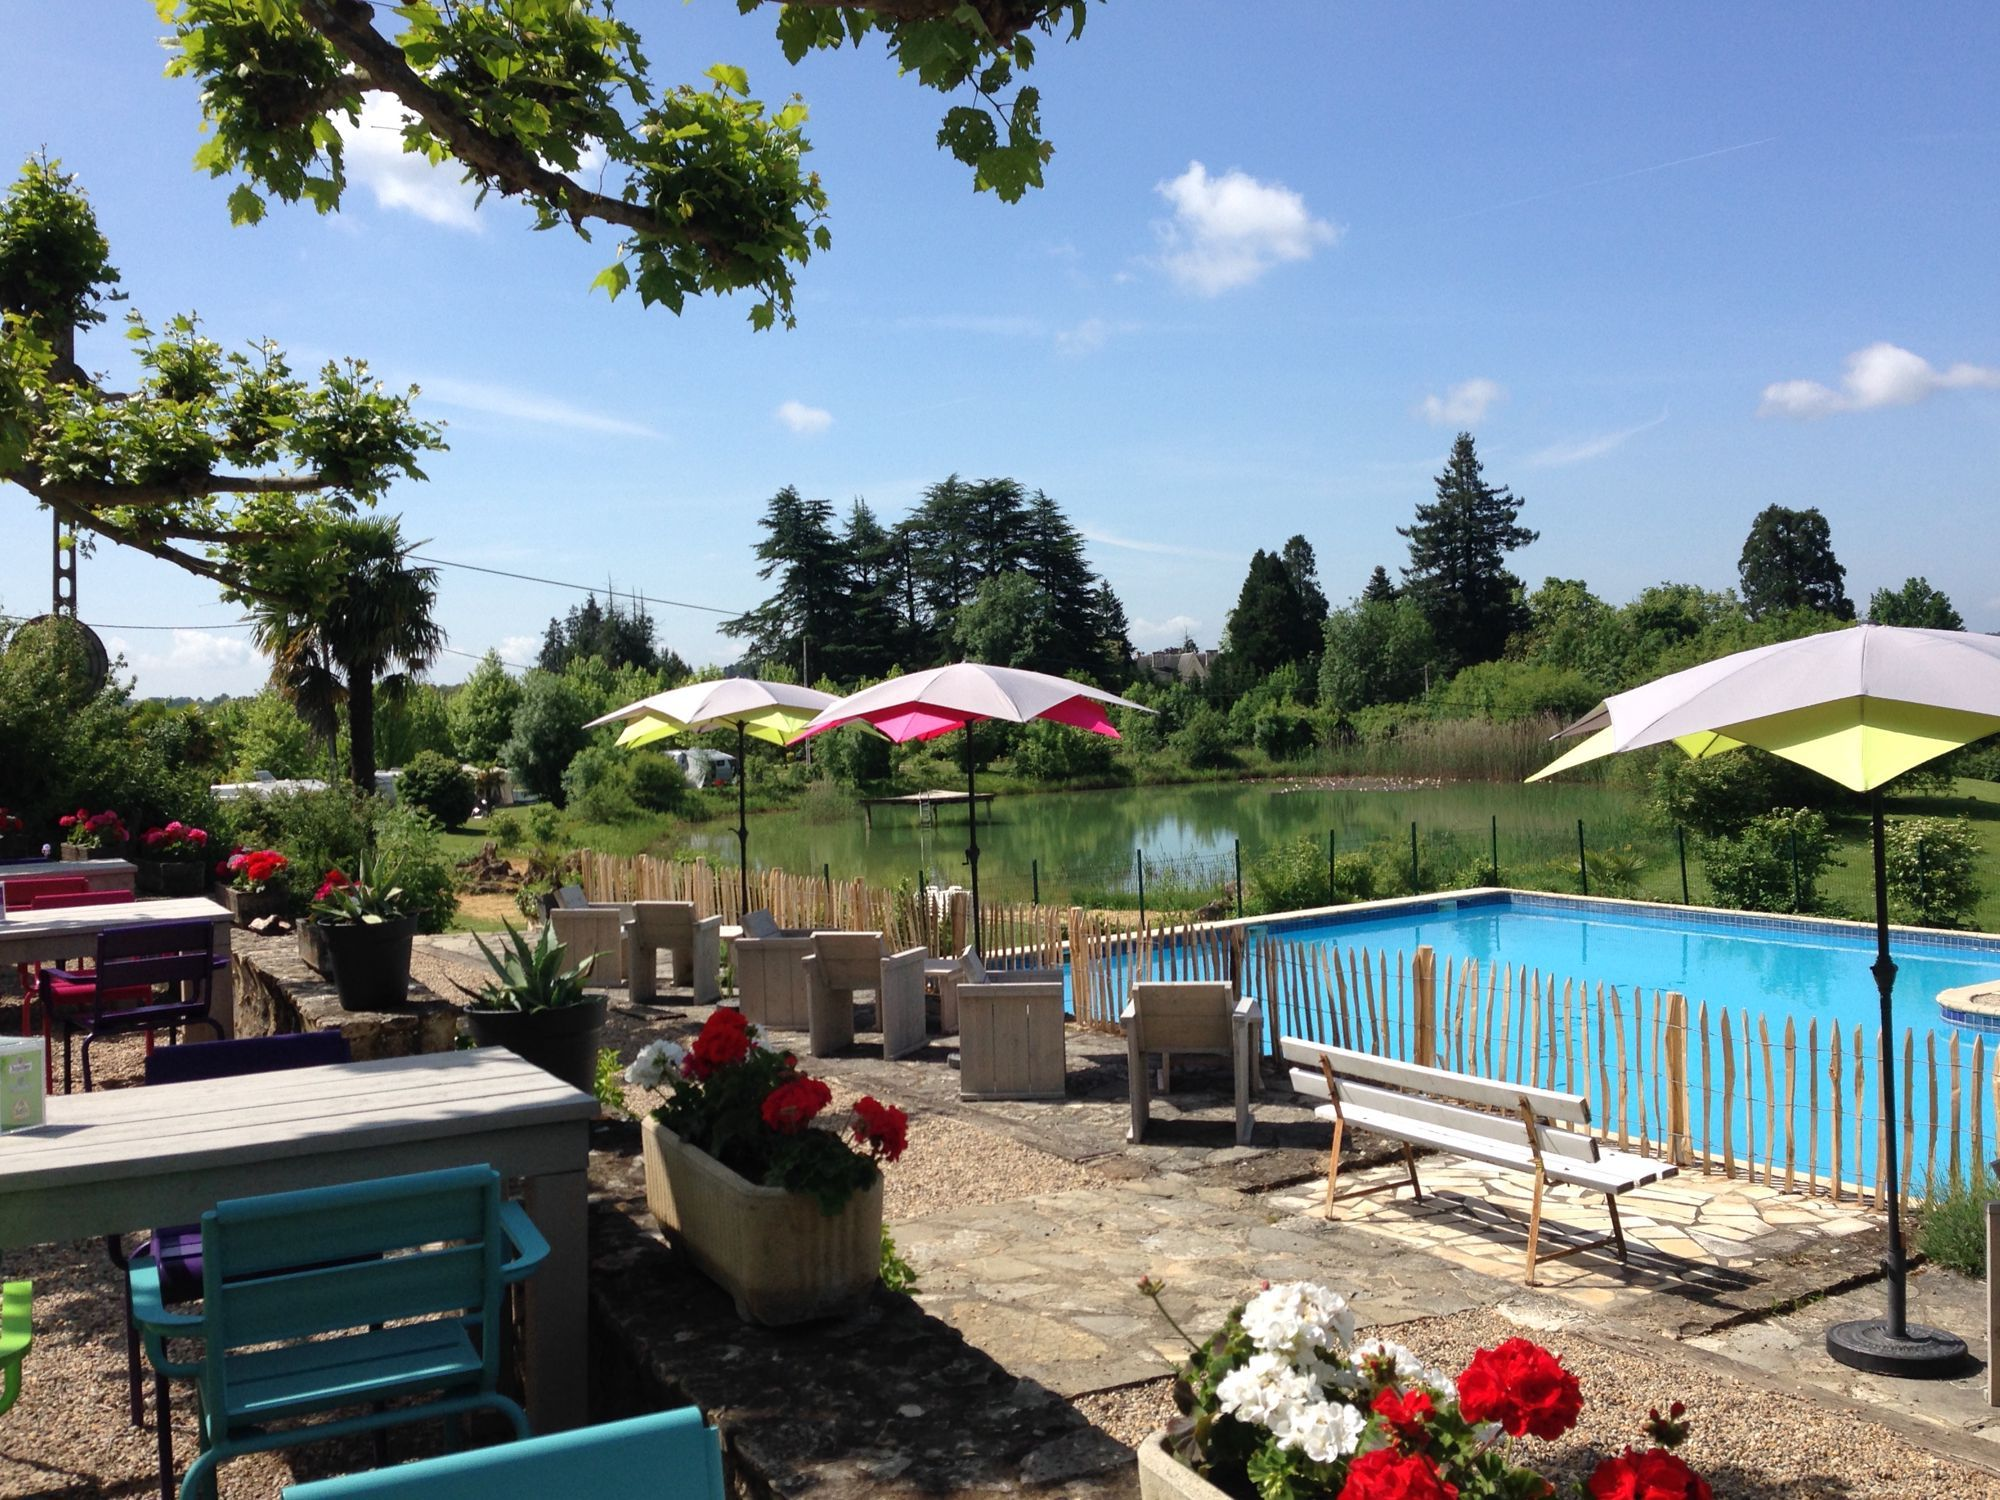 A relaxed Dordogne campsite with a swimming pool, a ...